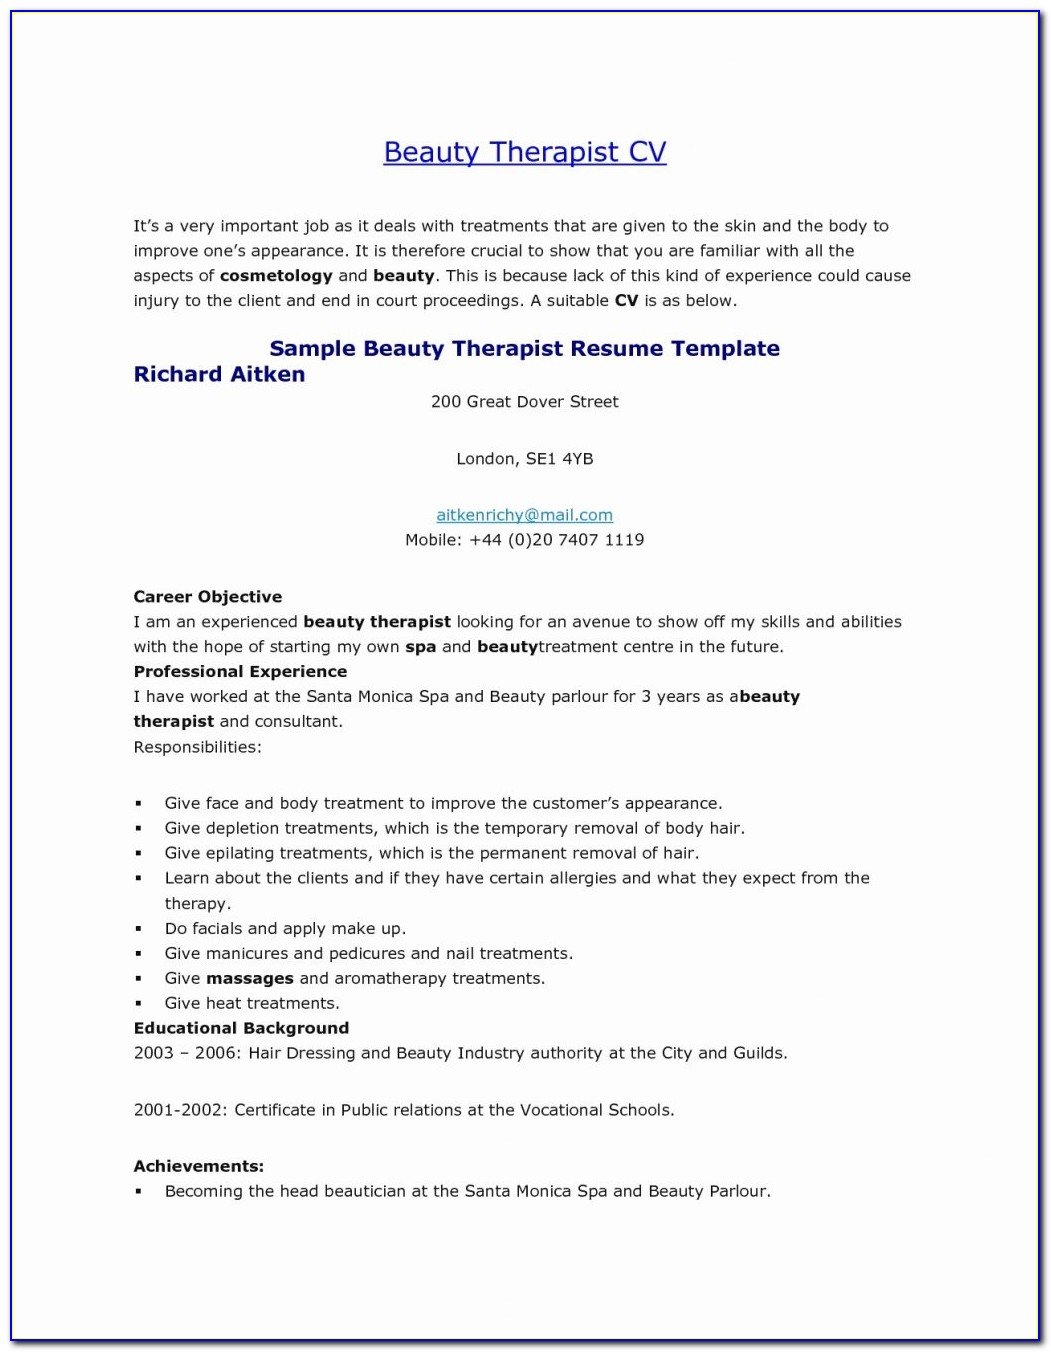 Beauty Therapist Resume Sample Beauty Therapist Resume Sample Beauty Therapist Job Description Template Massage Cover Letter